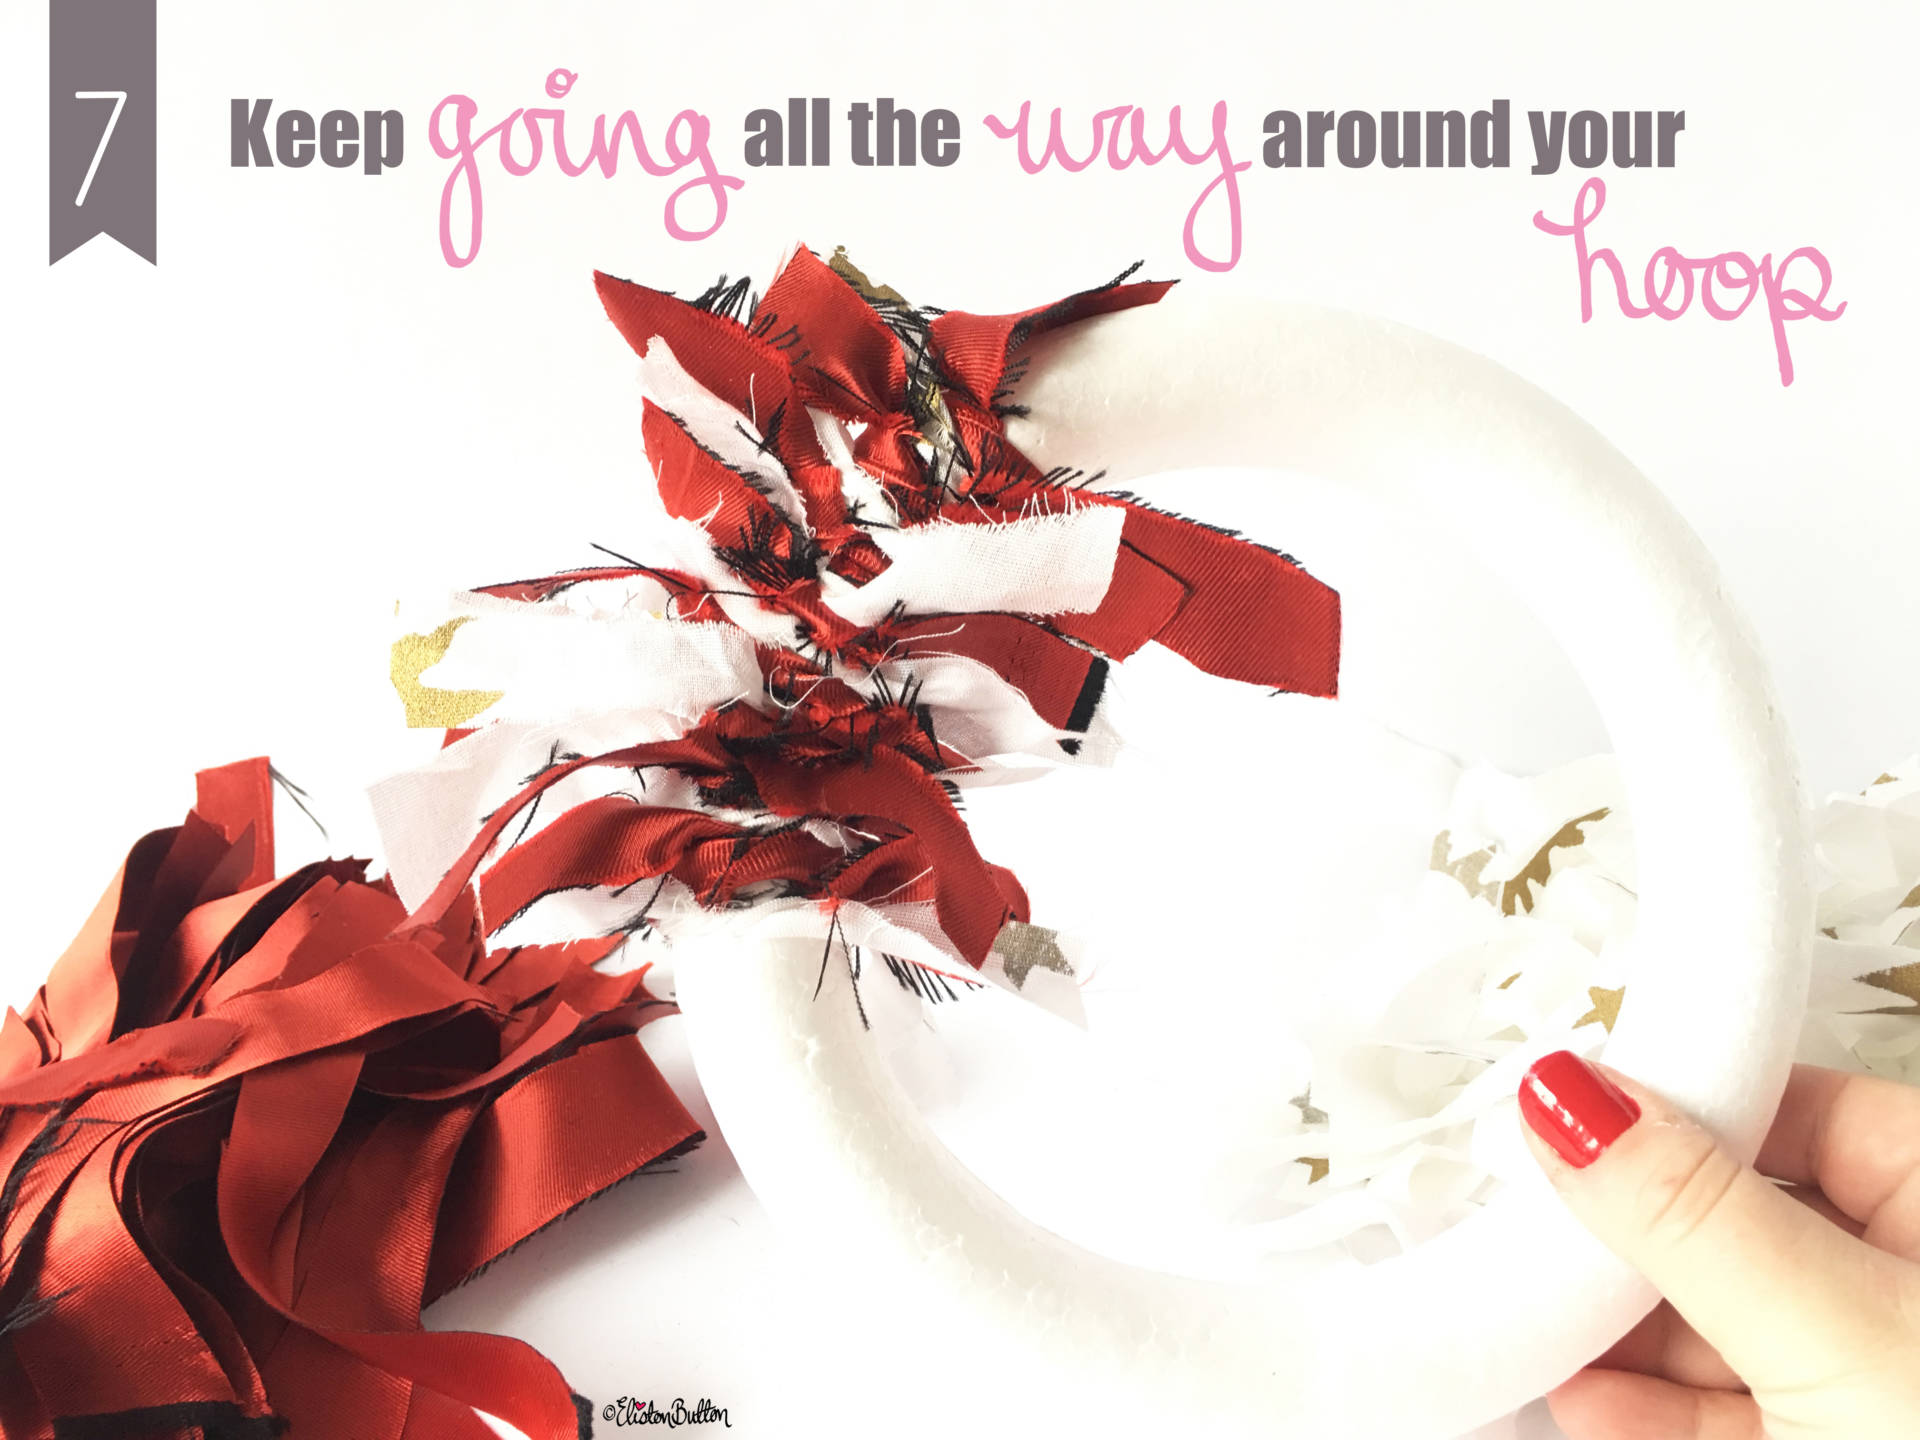 Keep Going! - Tutorial Tuesday - Fabric Scrap Christmas Wreath at www.elistonbutton.com - Eliston Button - That Crafty Kid – Art, Design, Craft & Adventure.